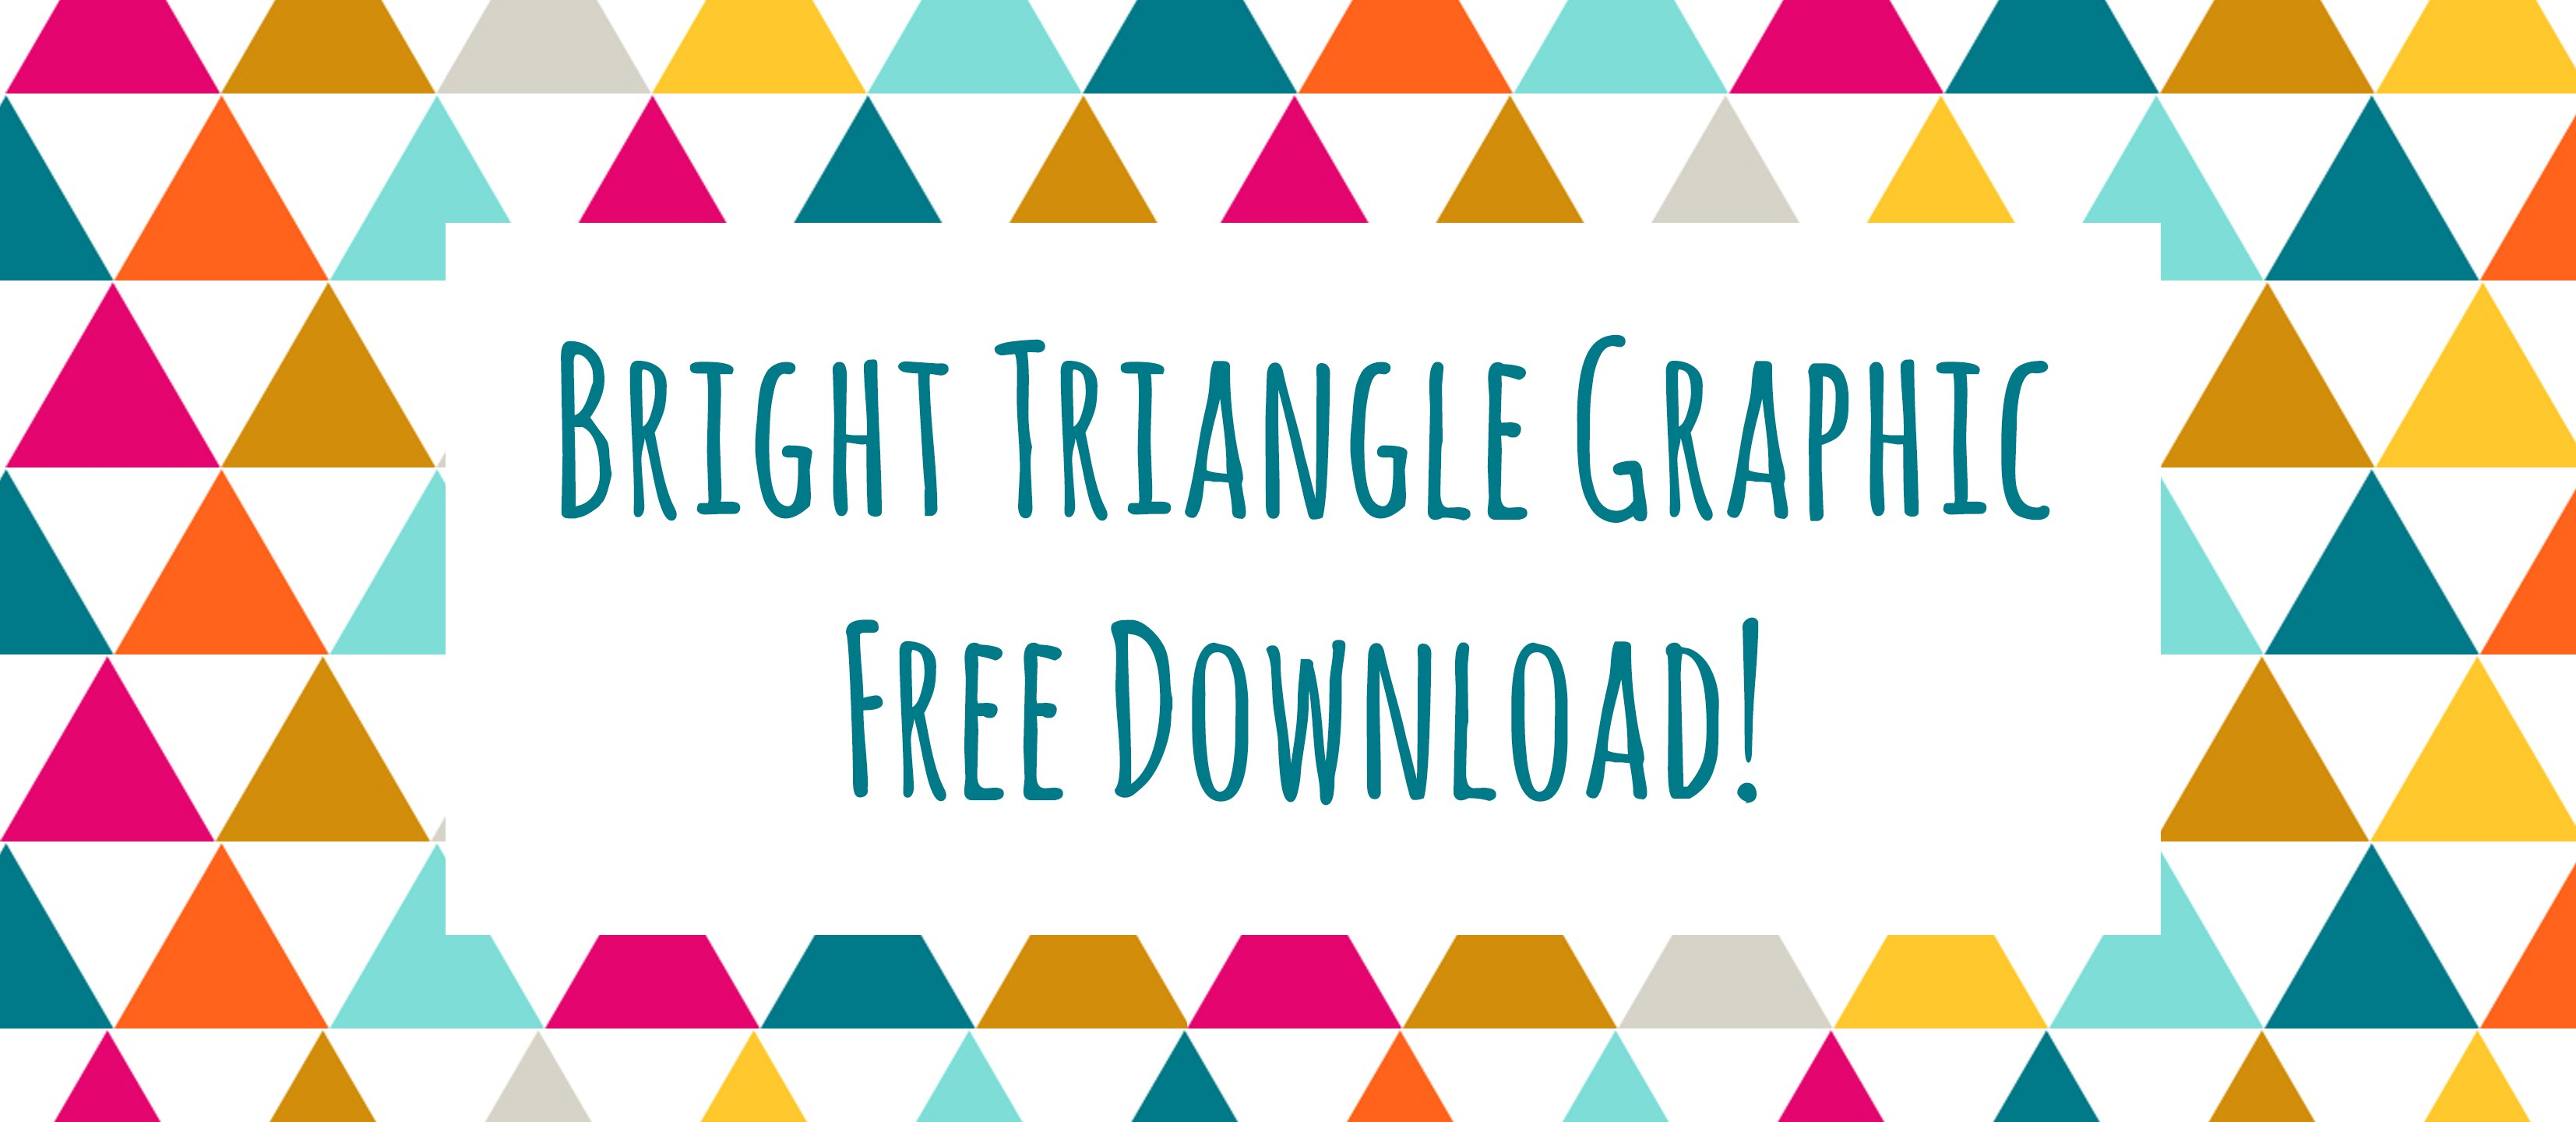 3307x1440 Bright Triangle Clip Art (Free Downloads!) Lace And Yarn